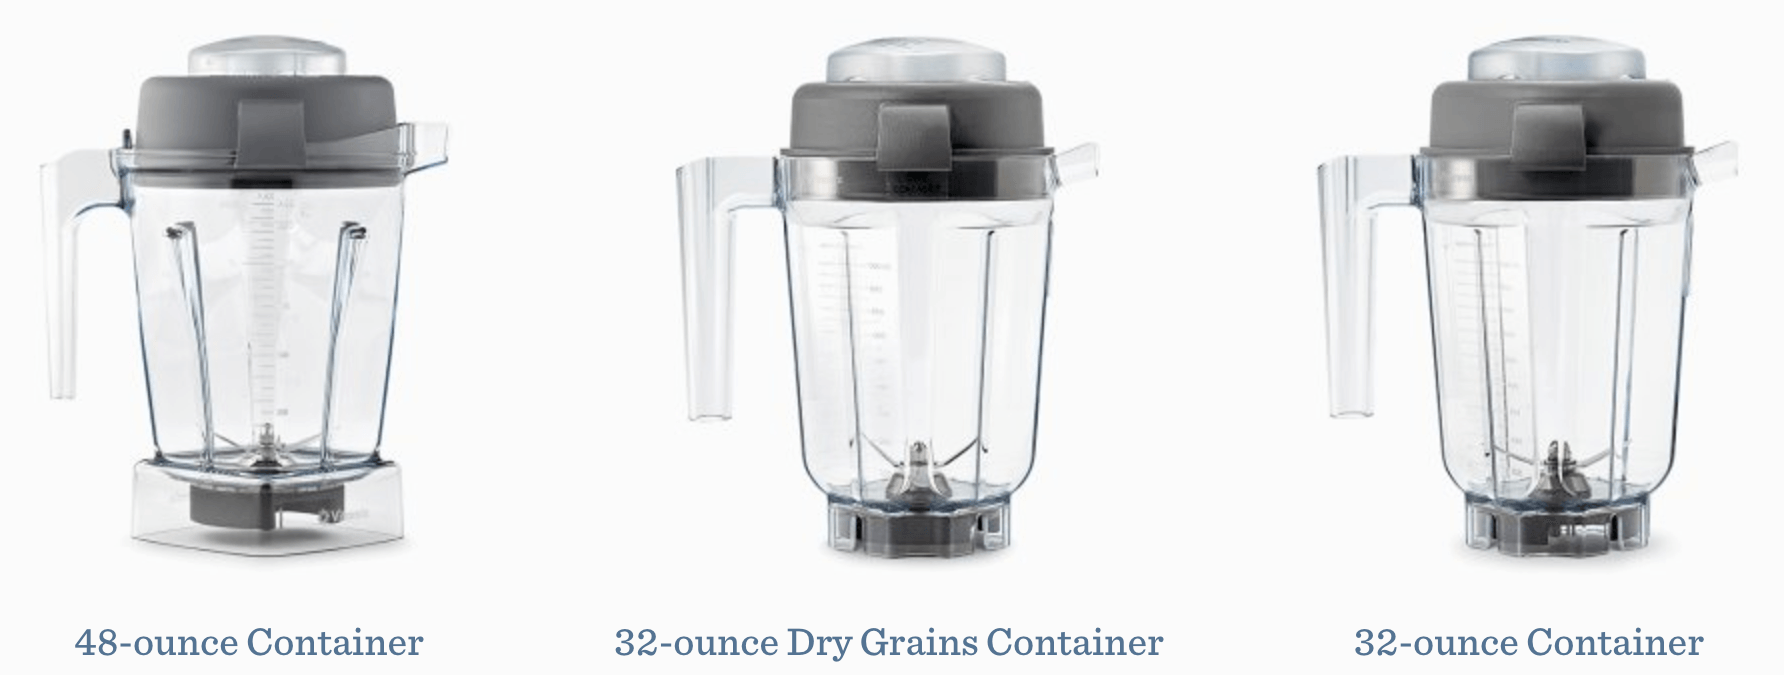 Vitamix S50 vs S55 vs S30 Containers